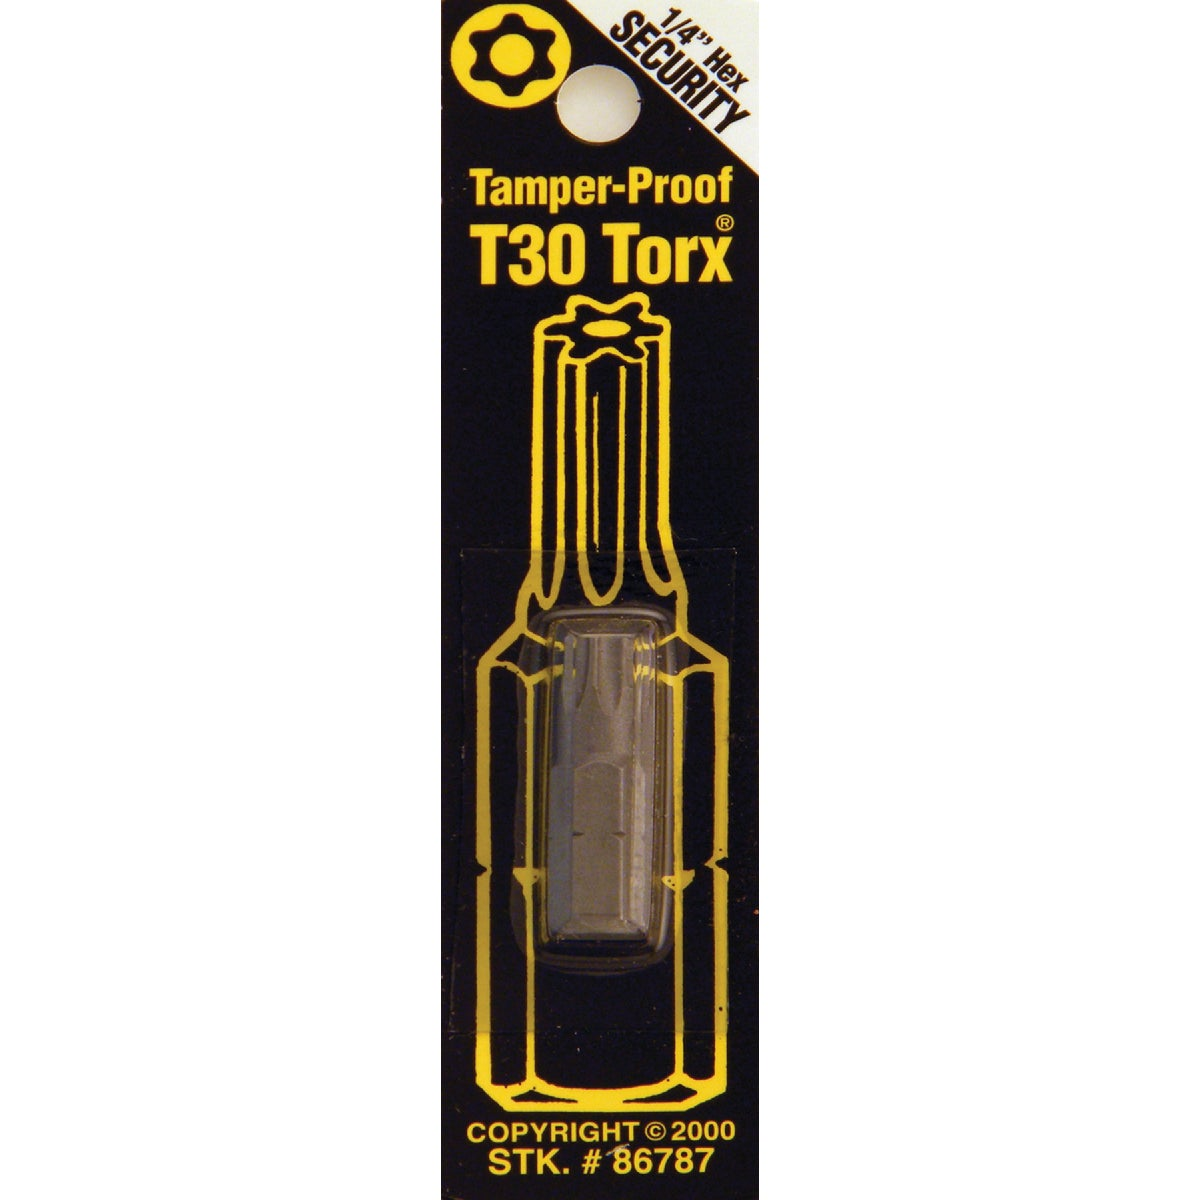 T30 TMPR SECURITY BIT - 86787 by Bwt Inc